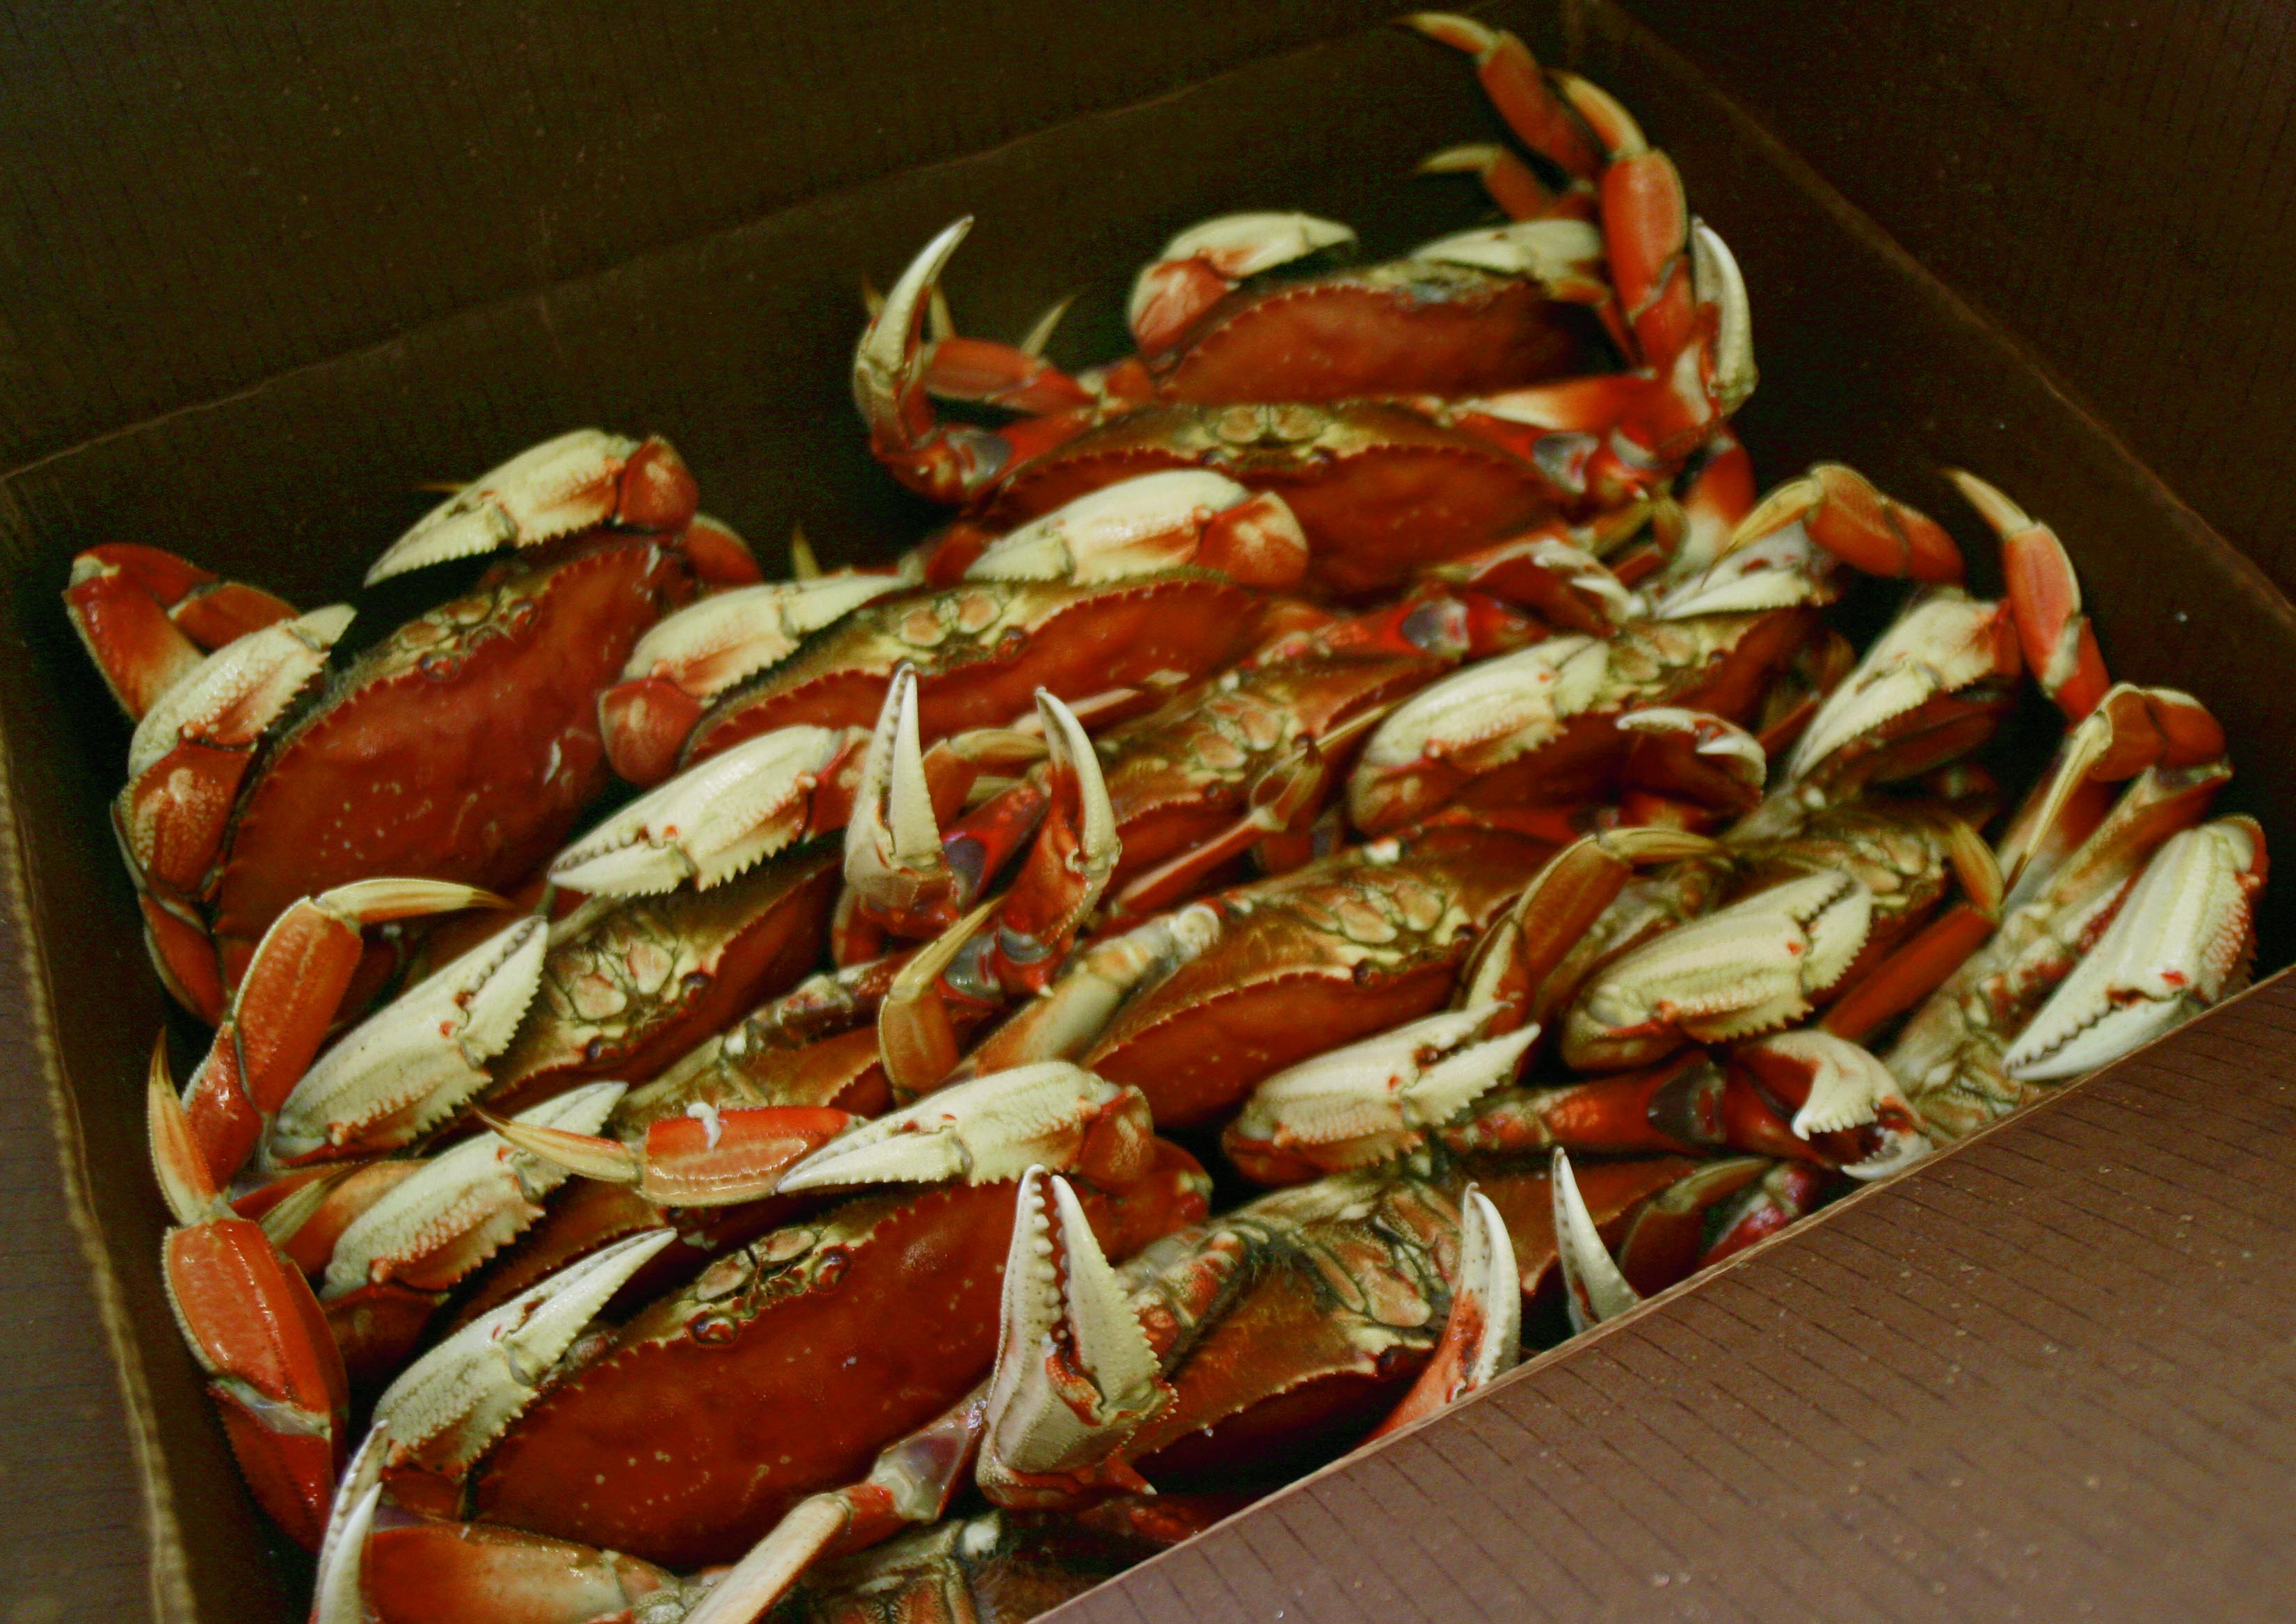 Dungeness Crab Makes Oregons List of Top 20 Agriculture Commodities